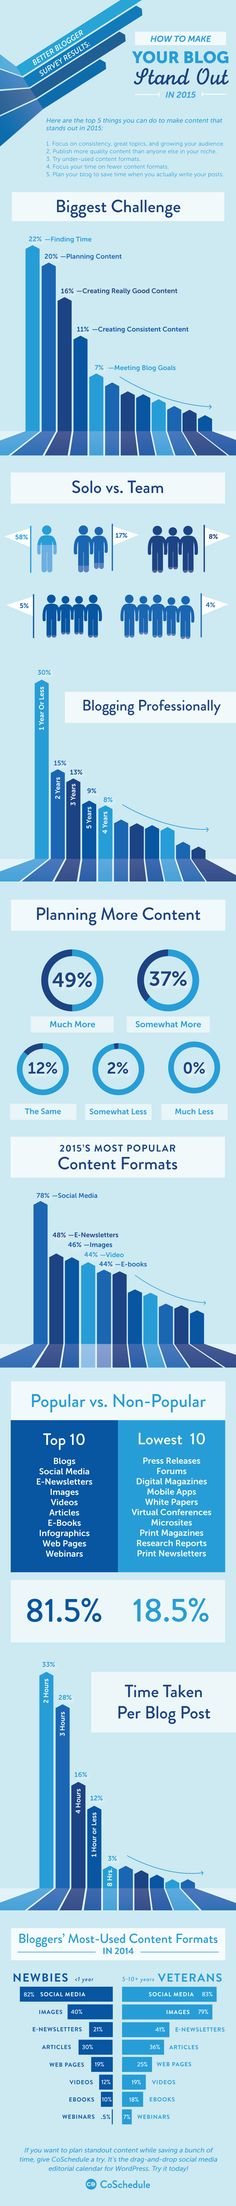 Infographic: How to Make Your Content Stand Out